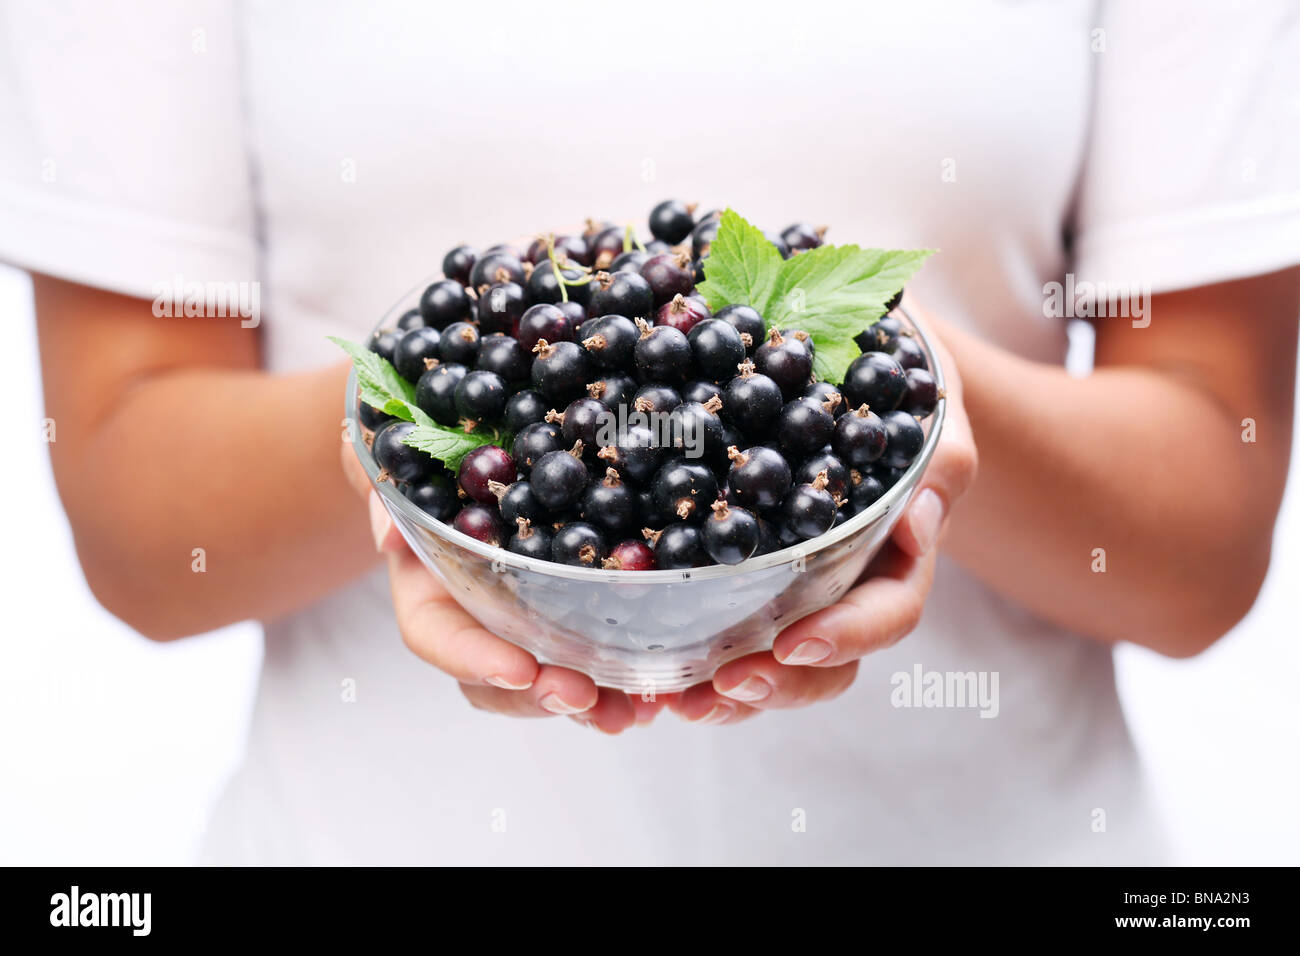 Crockery with black currant in woman hands. - Stock Image